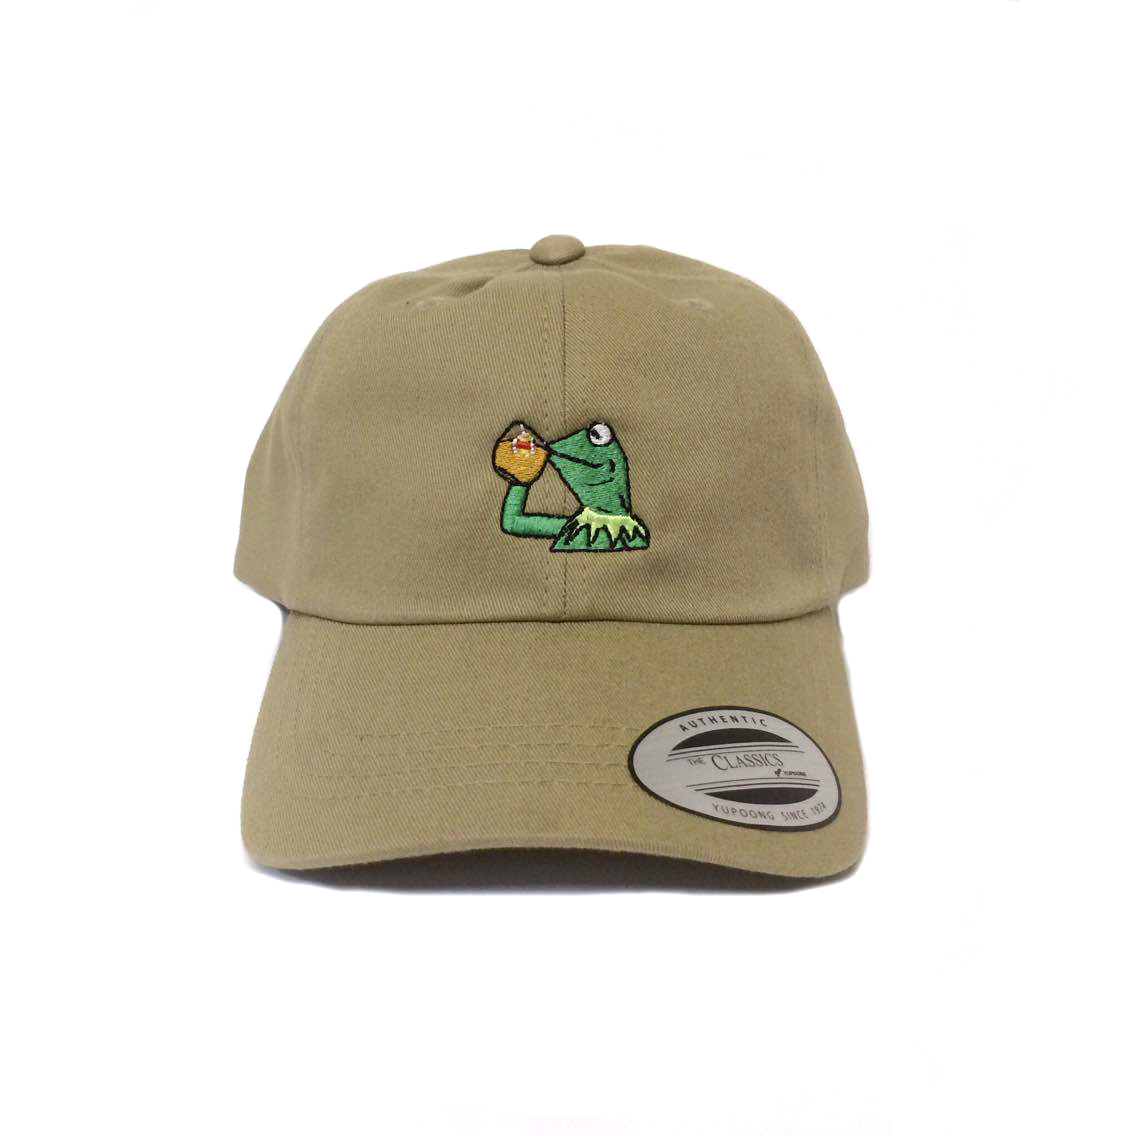 """None Of My Business"" Dad Cap"